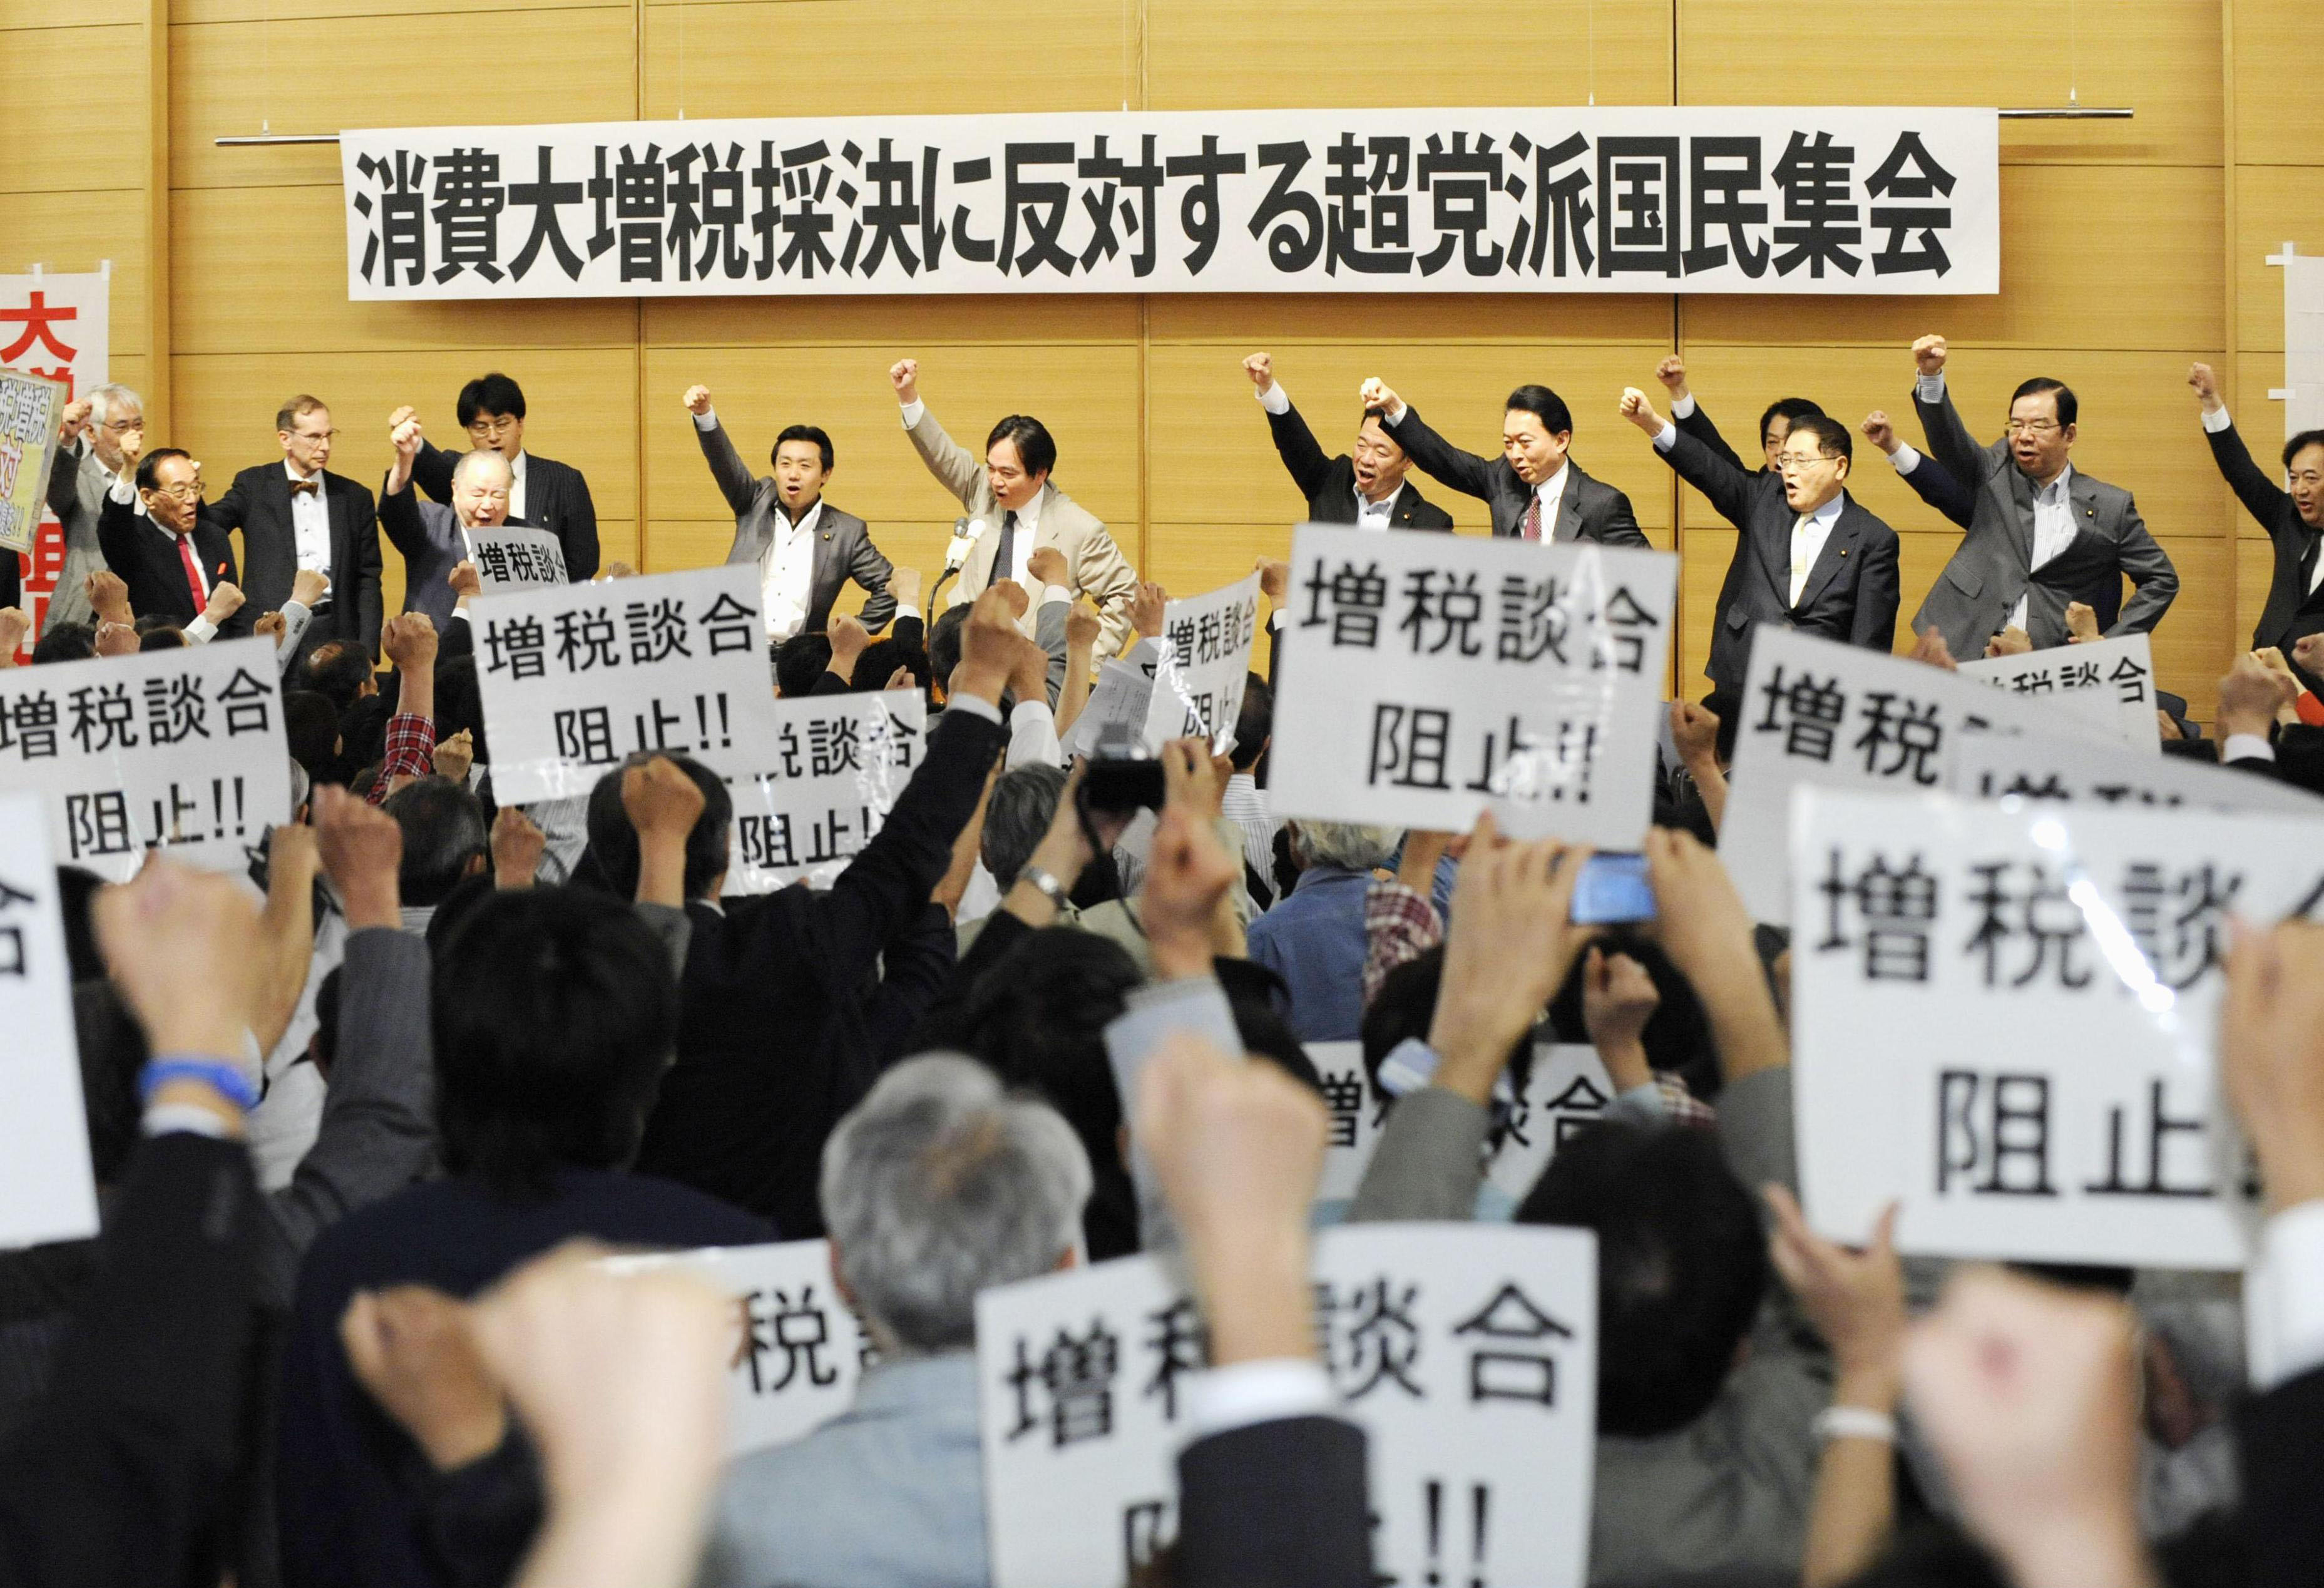 Common ground: A bipartisan group of lawmakers voices opposition to the proposed sales tax hike in Tokyo on Thursday. | KYODO